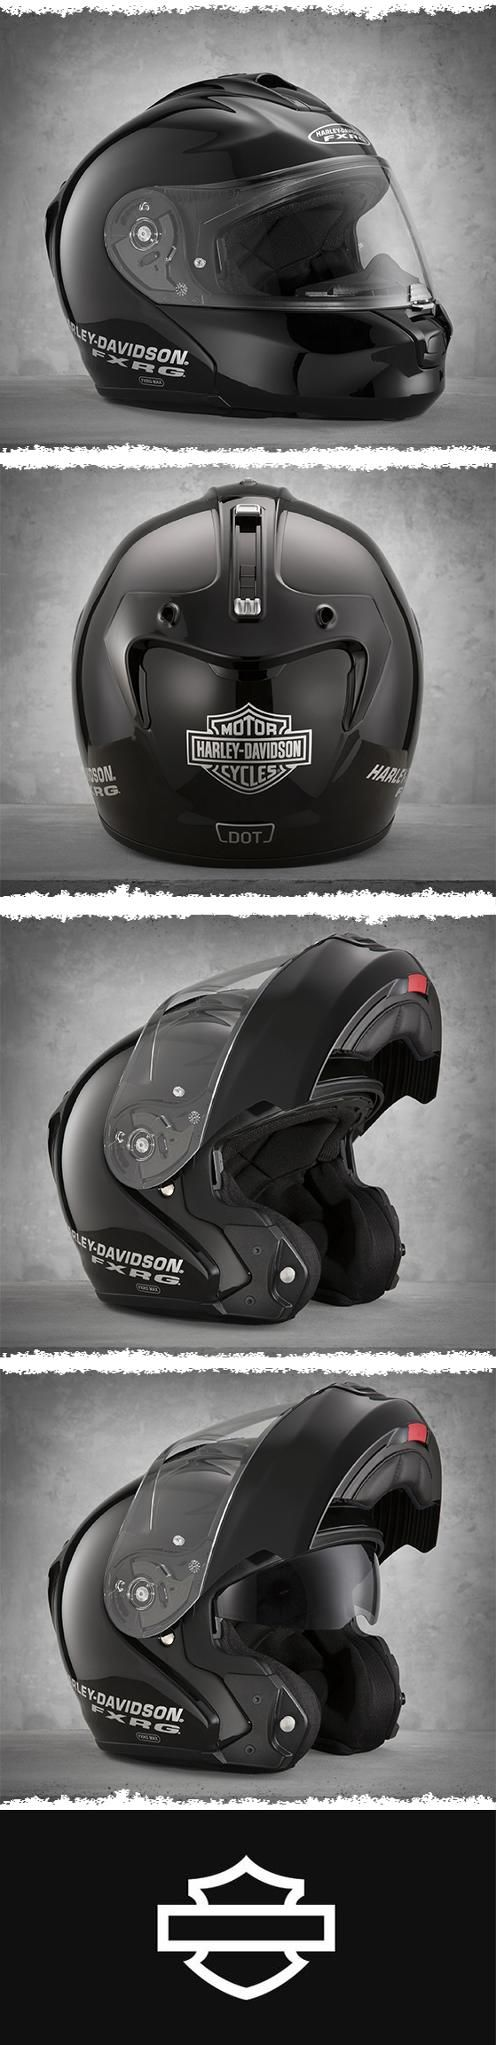 Extremely quiet, even at high speeds and has the convenience of a retractable sun shield that deploys quickly and easily with one touch. | Harley-Davidson Men's FXRG Modular Helmet